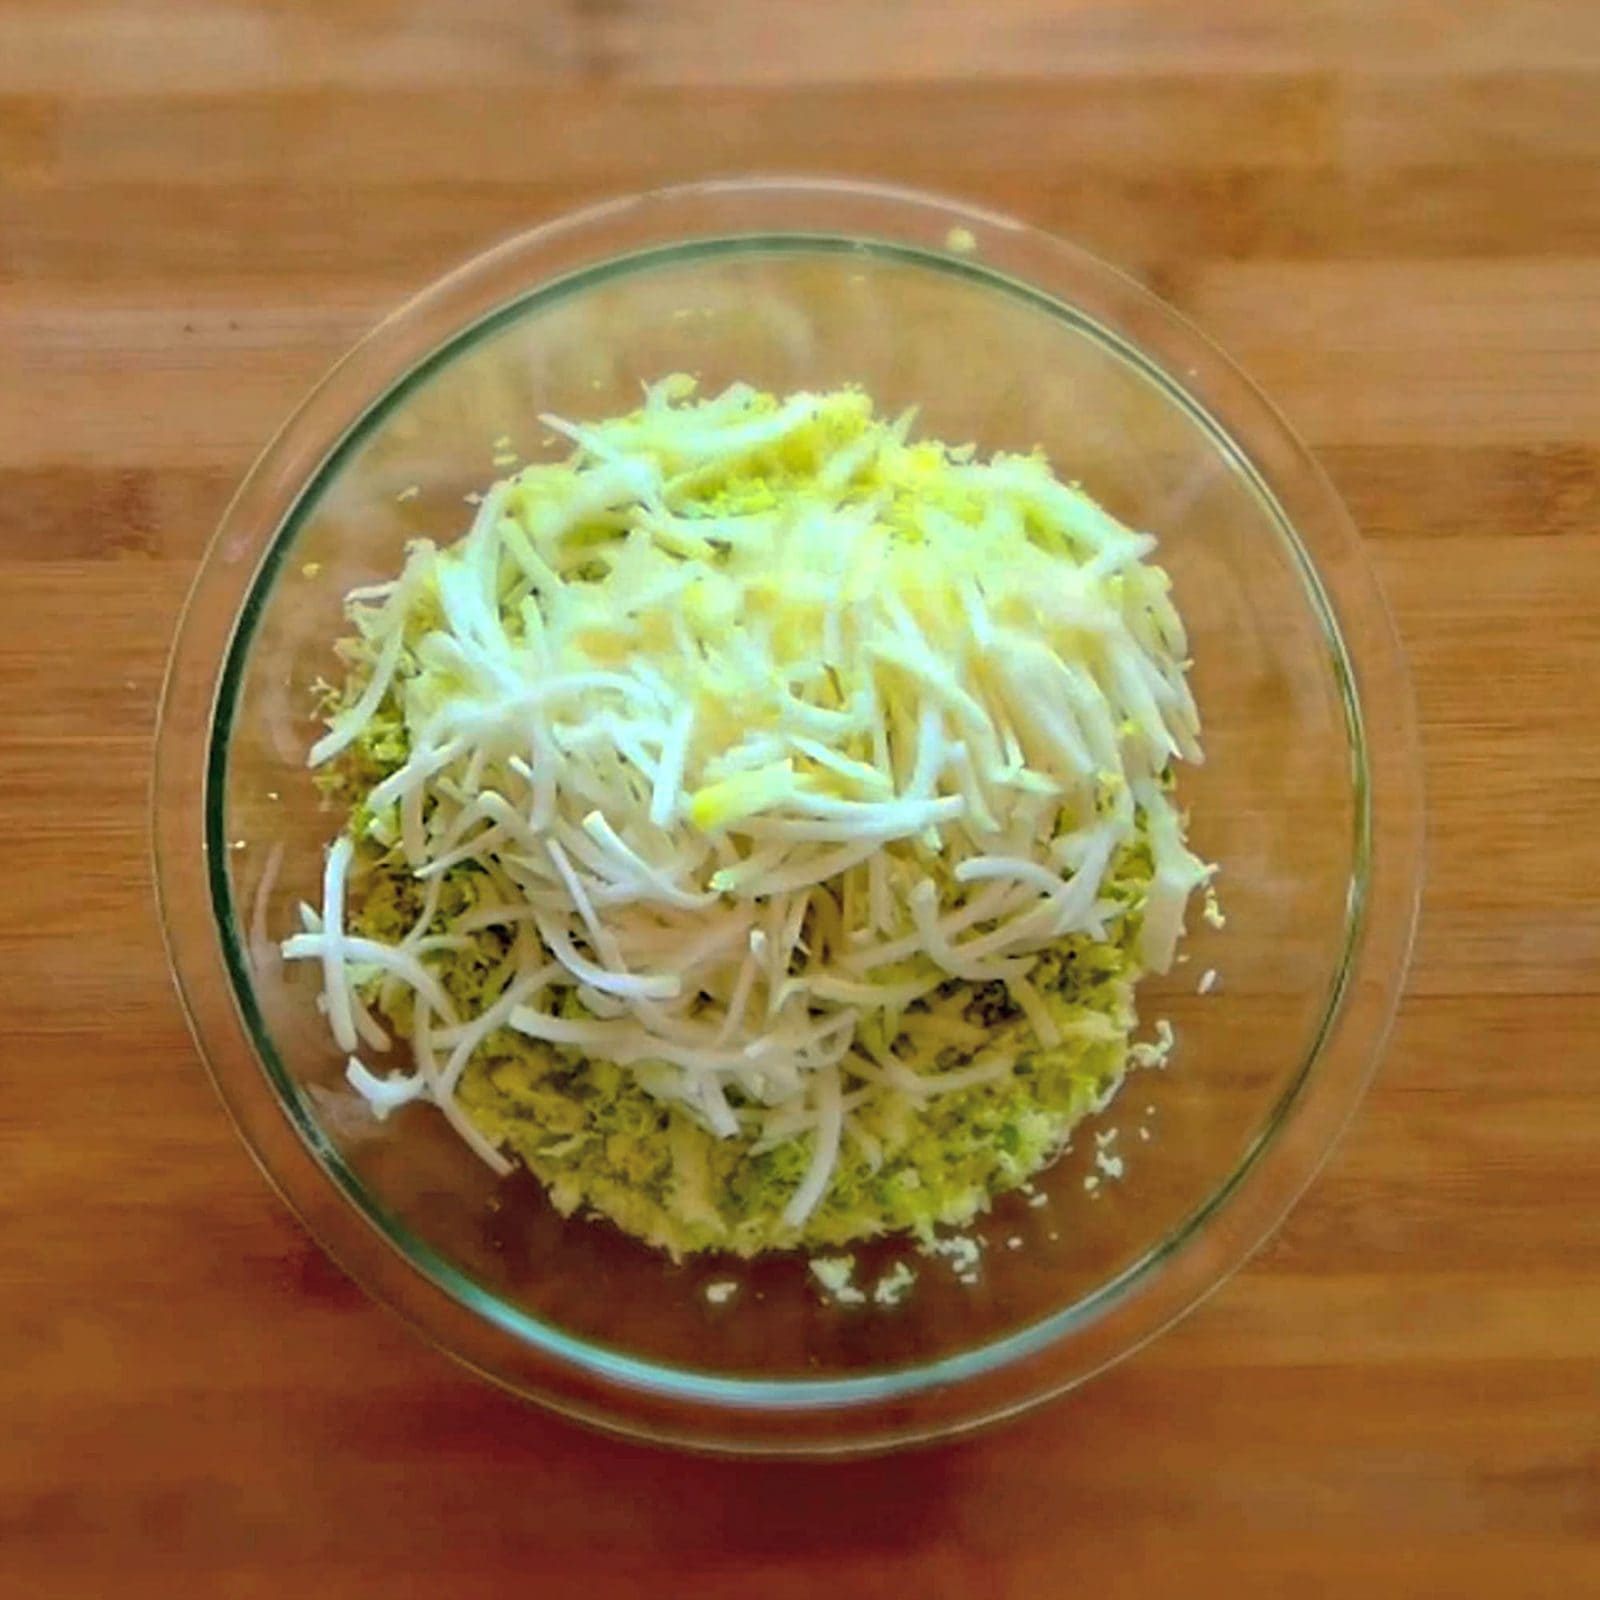 Kohlrabi and cabbage